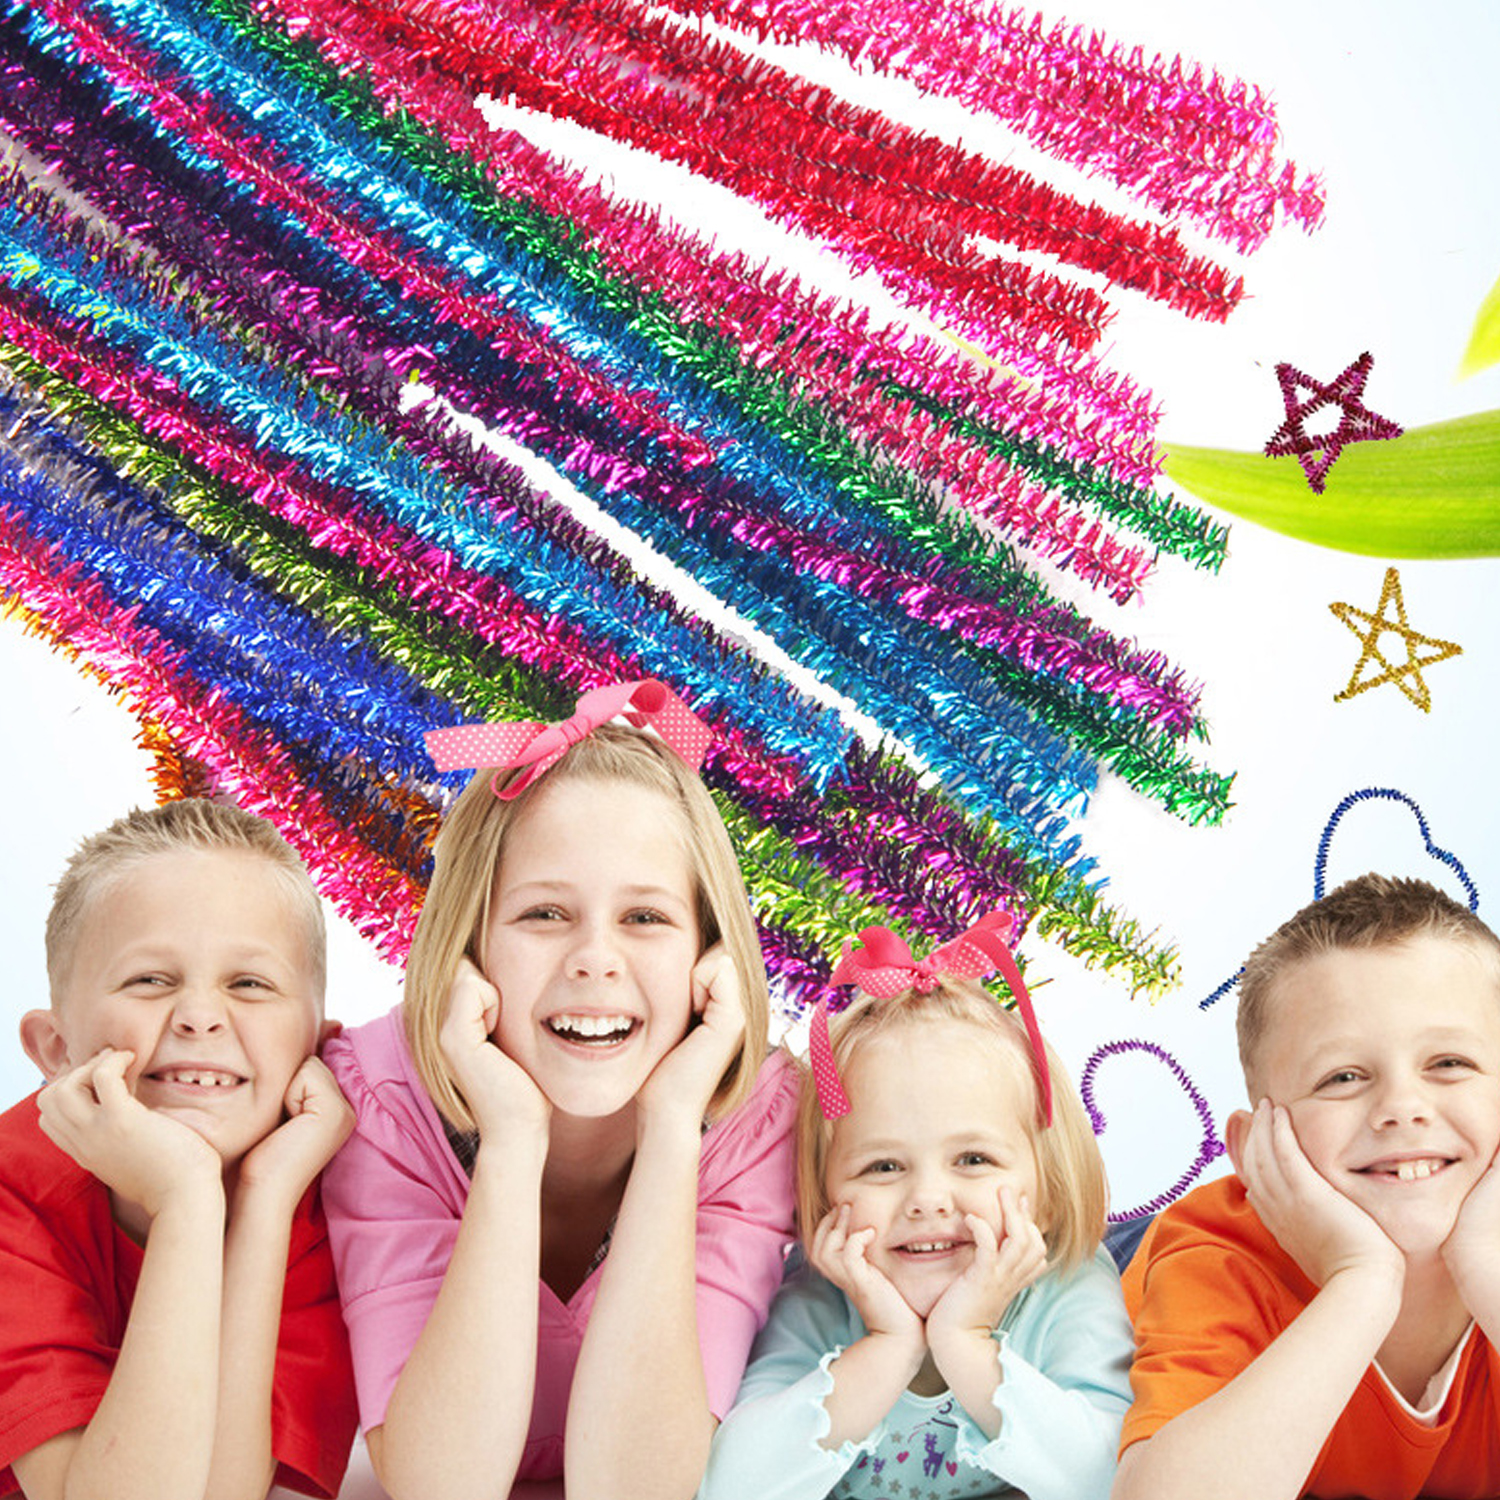 100pcs Glitter Chenille Stems Crafts Pipe Cleaners For Christmas Decorations DIY Handmade Project Supplies Random Colors